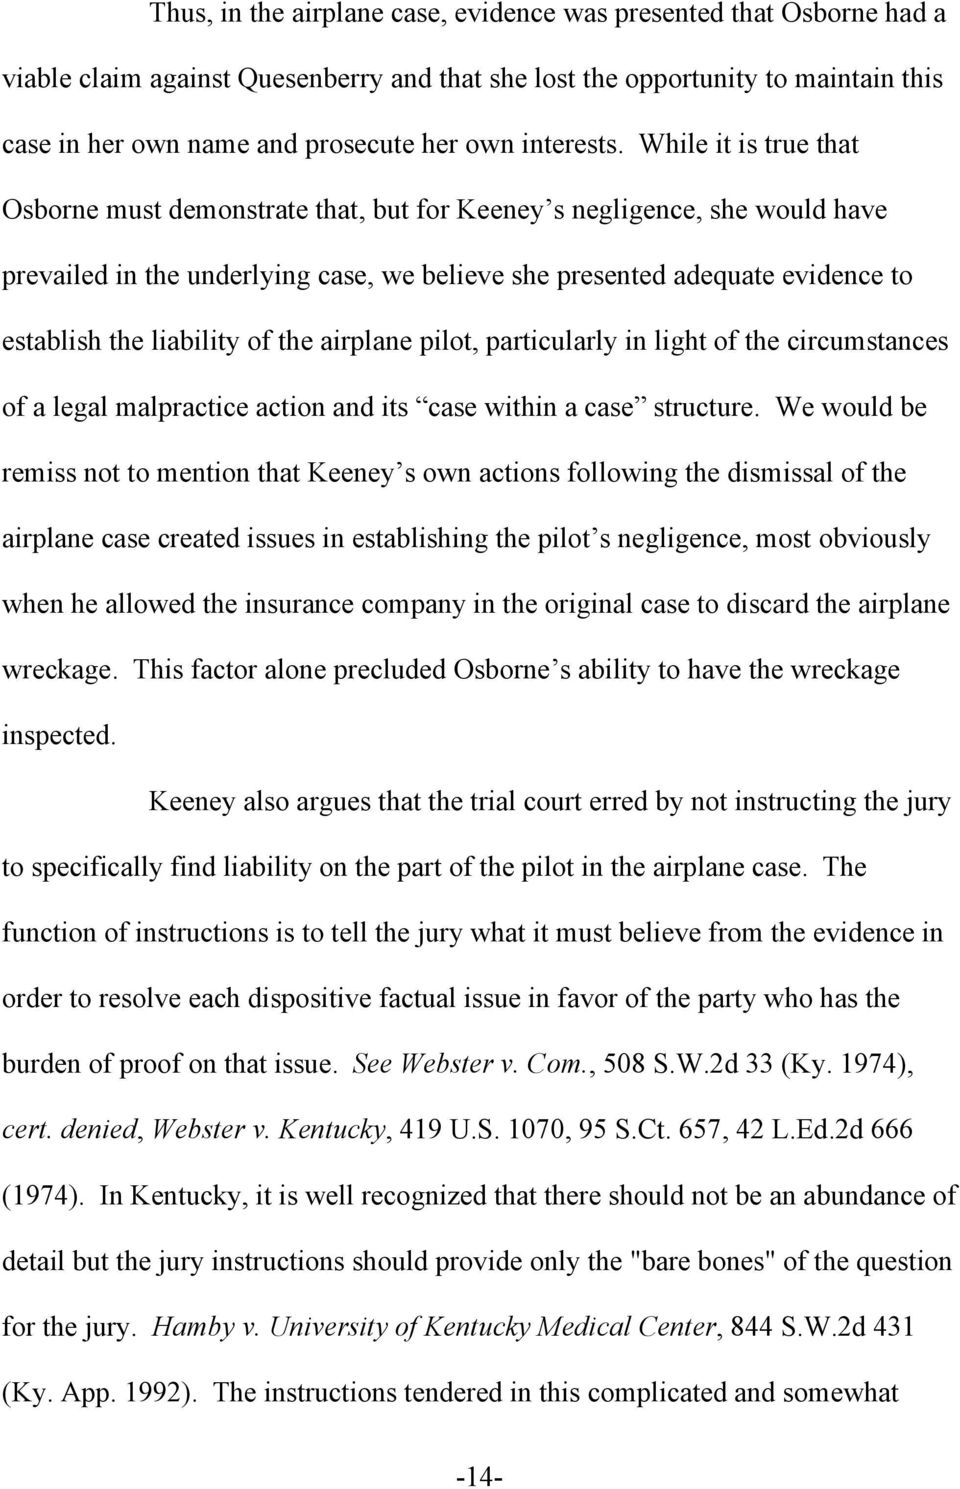 While it is true that Osborne must demonstrate that, but for Keeney s negligence, she would have prevailed in the underlying case, we believe she presented adequate evidence to establish the